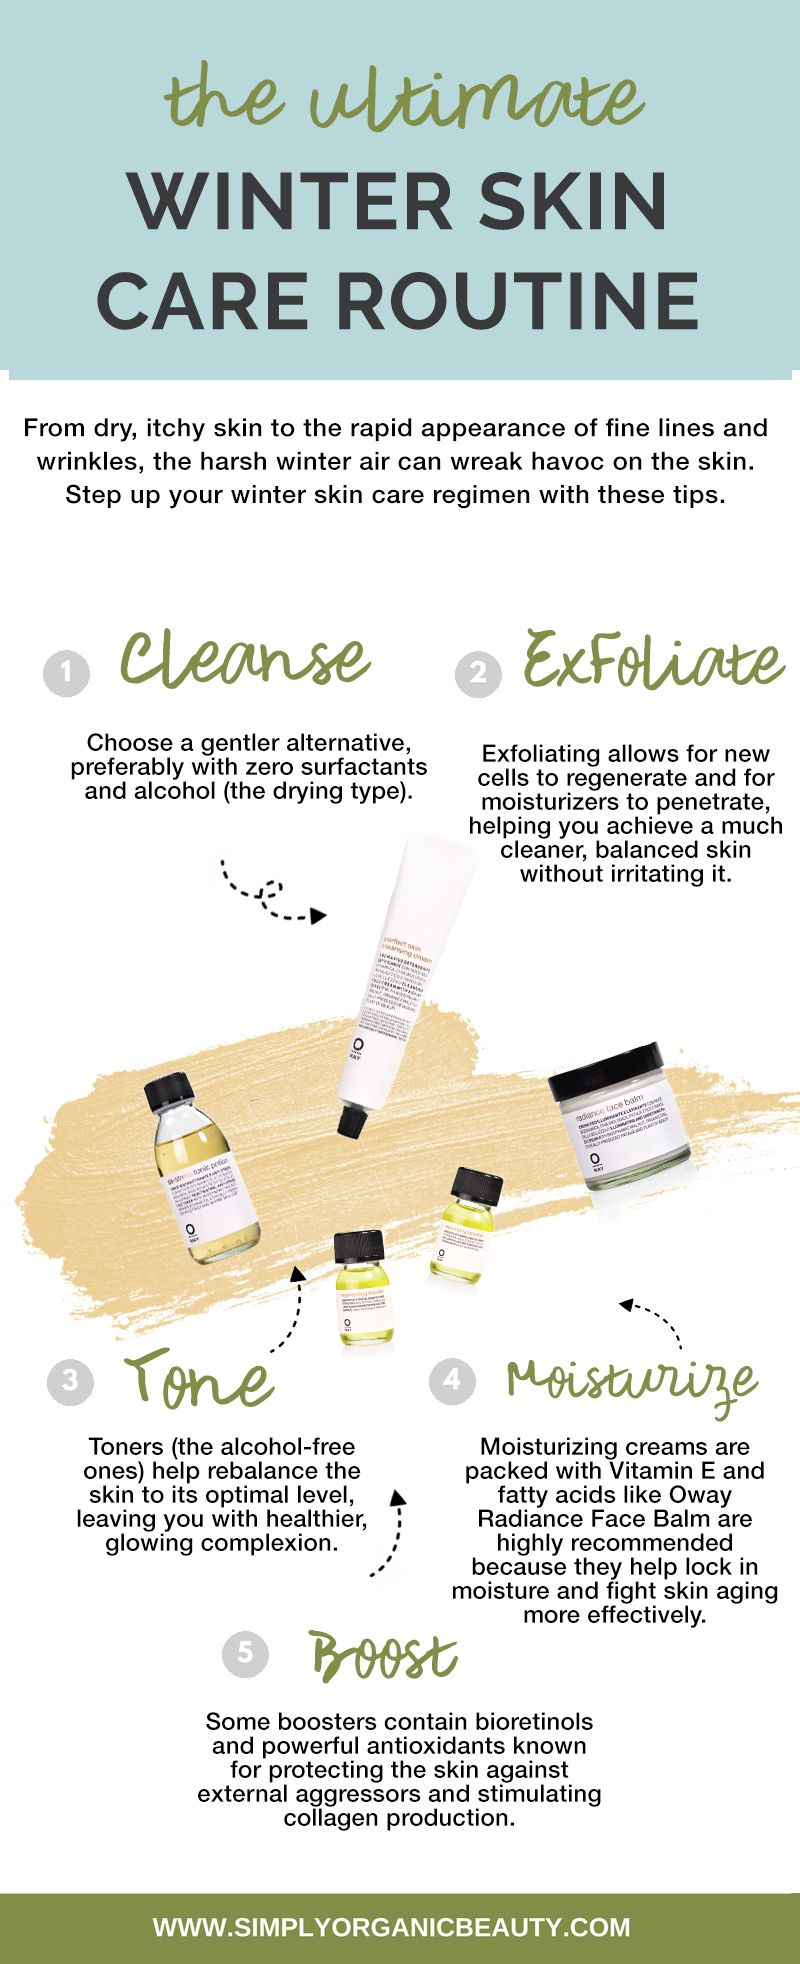 The Ultimate Winter Skin Care Routine For Healthy Glowing Skin Simply Organic Beauty Winter Skin Care Routine Winter Skin Care Winter Skin